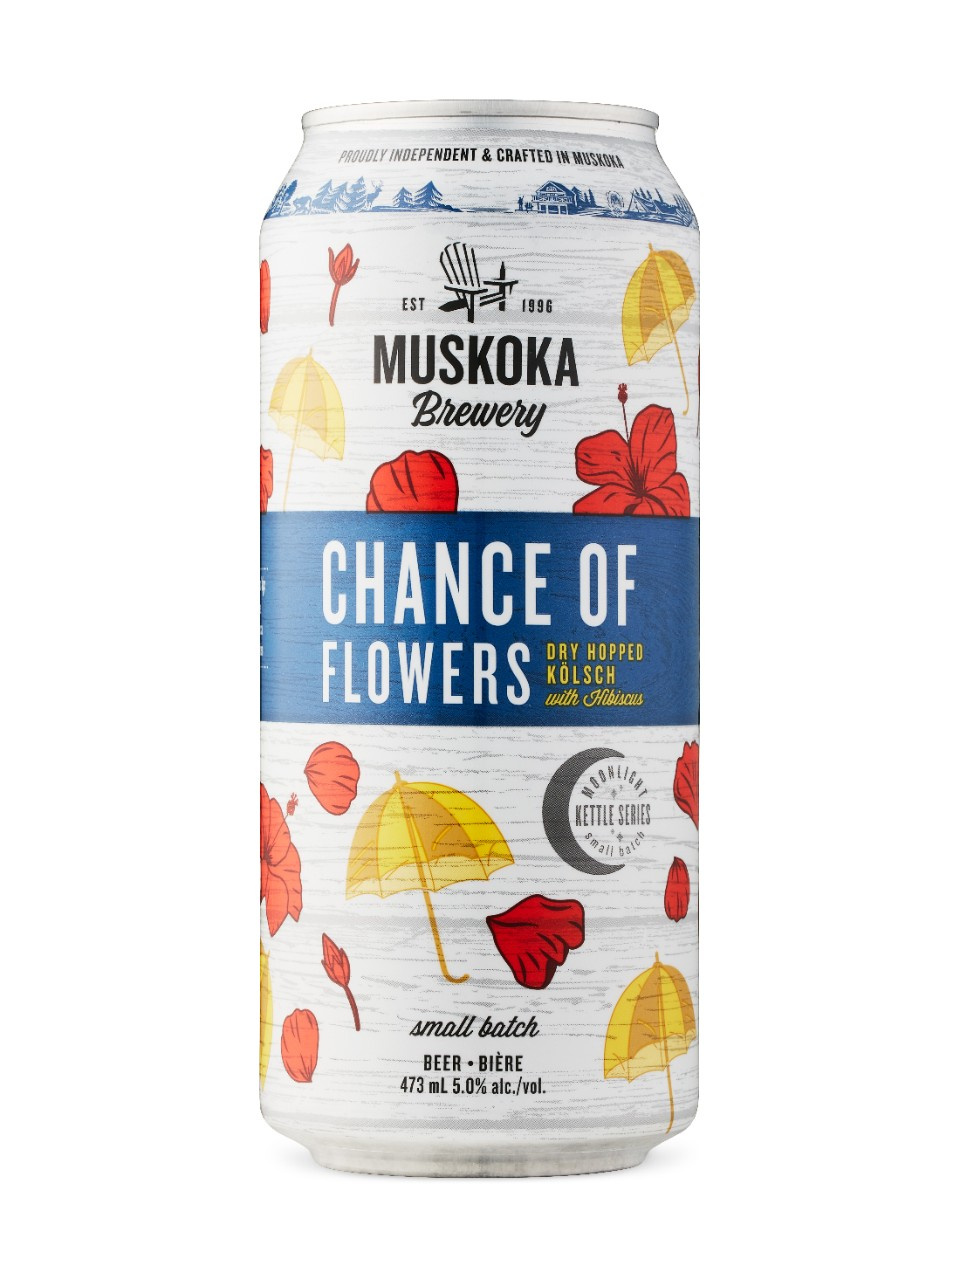 Muskoka Chance of Flowers from LCBO